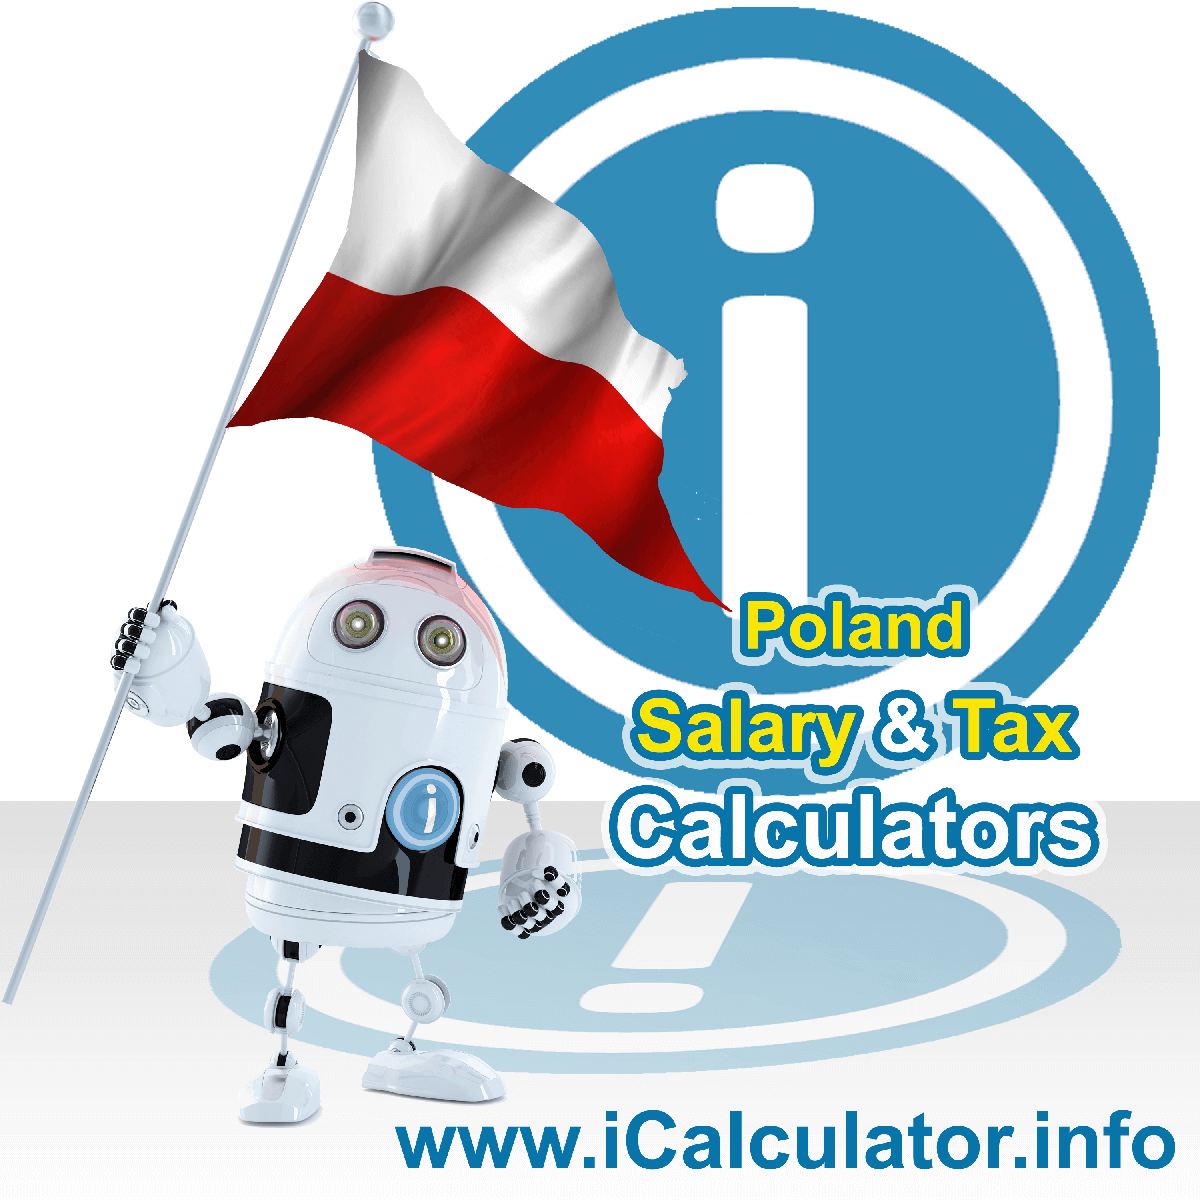 Poland Tax Calculator. This image shows the Poland flag and information relating to the tax formula for the Poland Salary Calculator